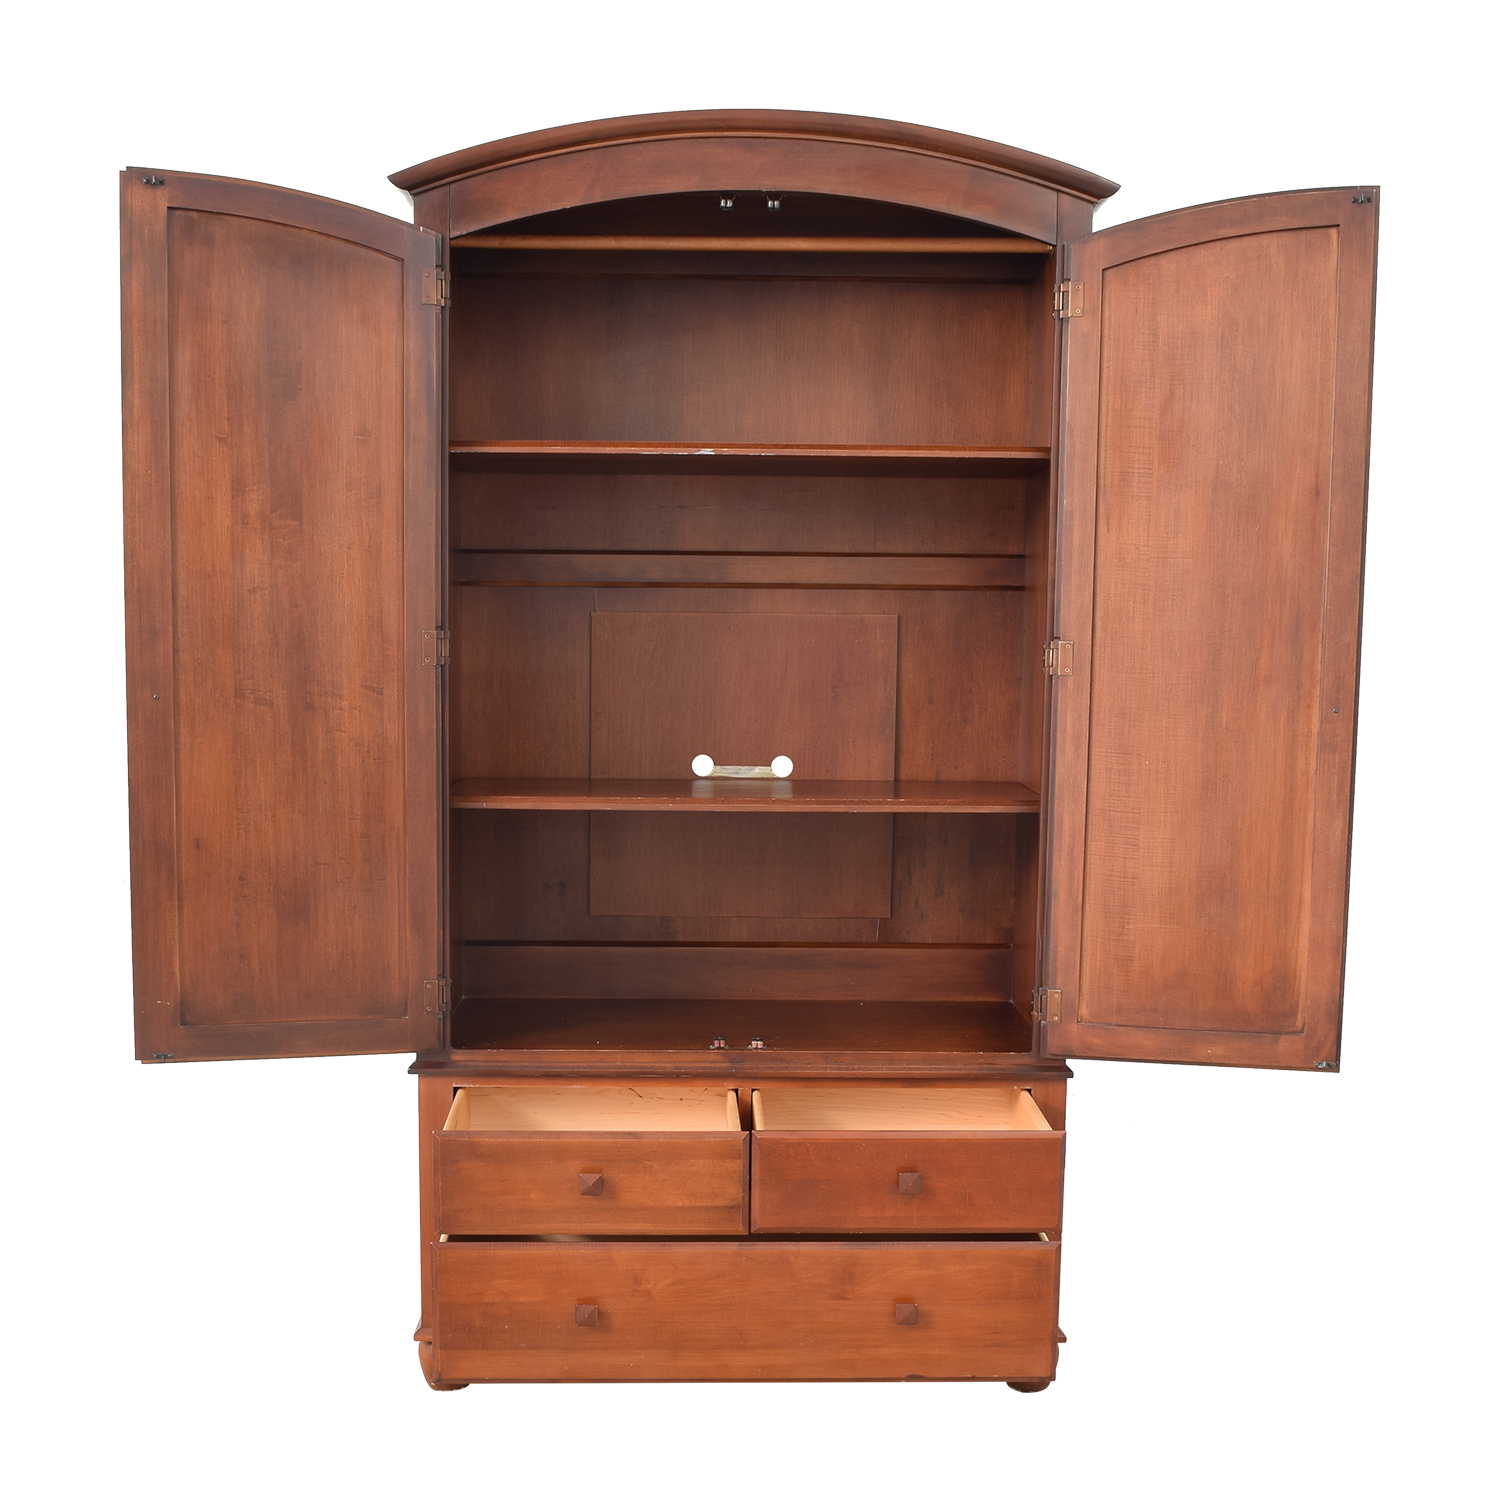 Ethan Allen Ethan Allen Armoire with Drawers nyc